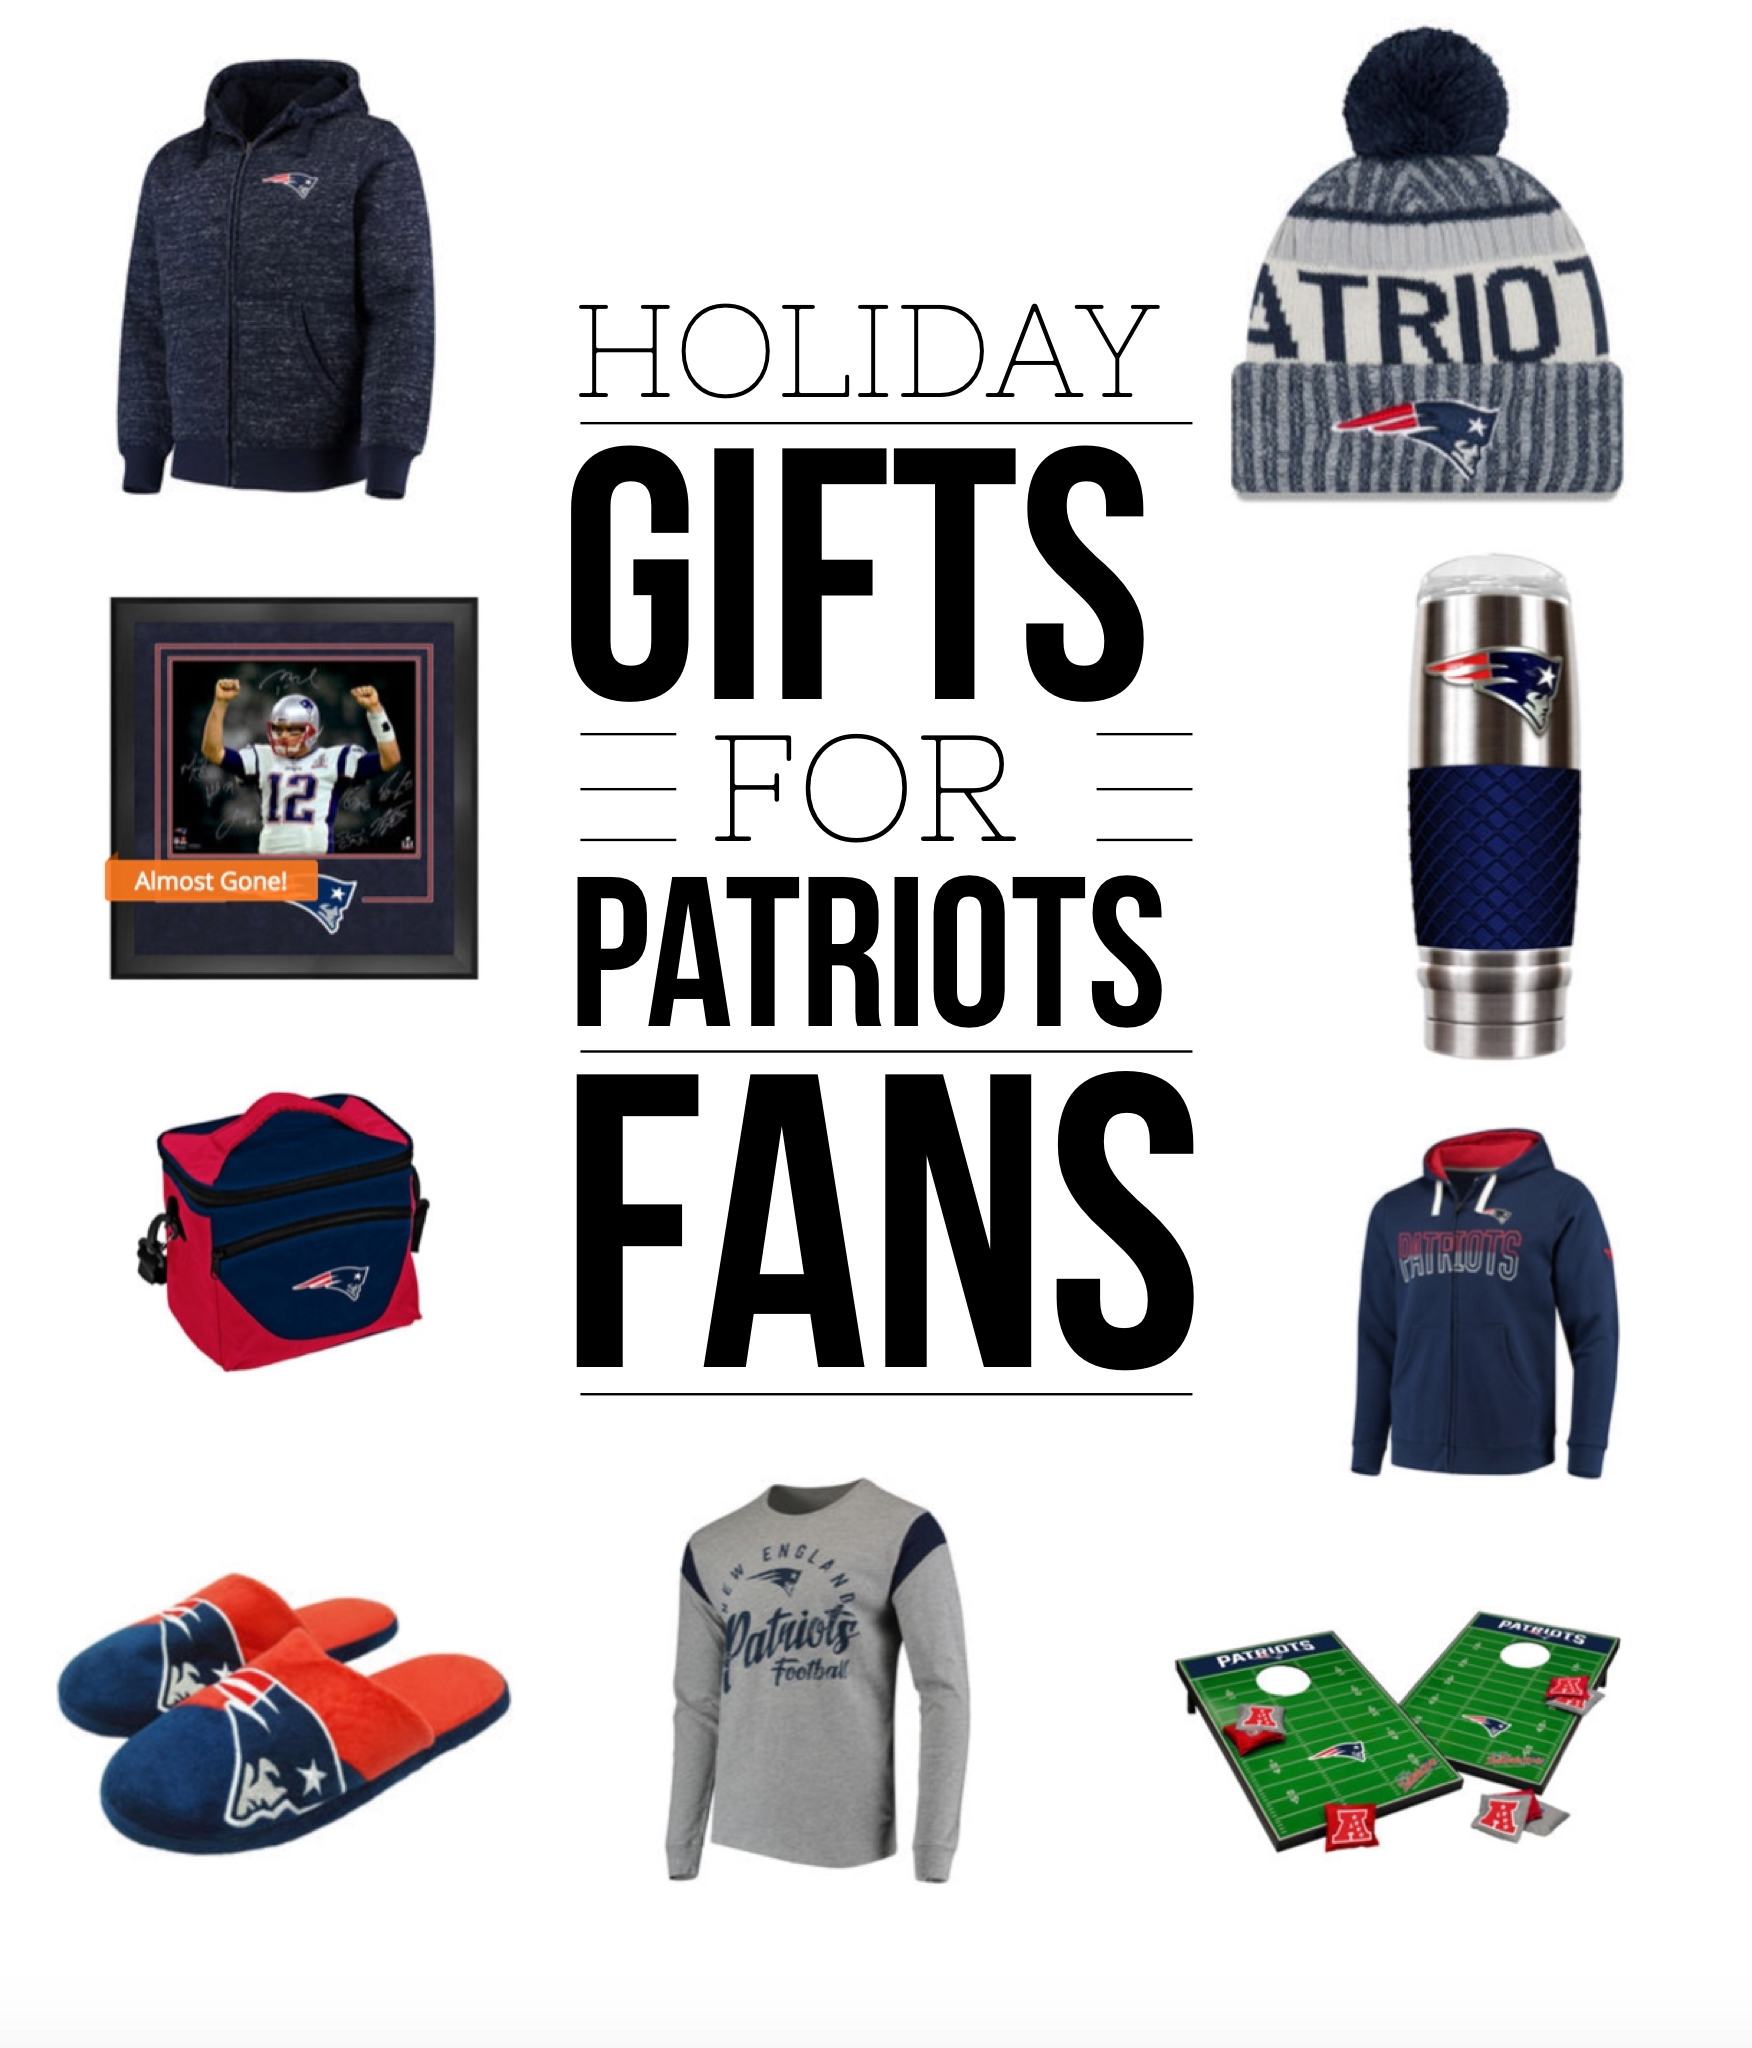 Patriots Gear - Holiday Gift Guide for New England Patriots Fans via Misty Nelson frostedblog.com @frostedevents #NFLFanStyle